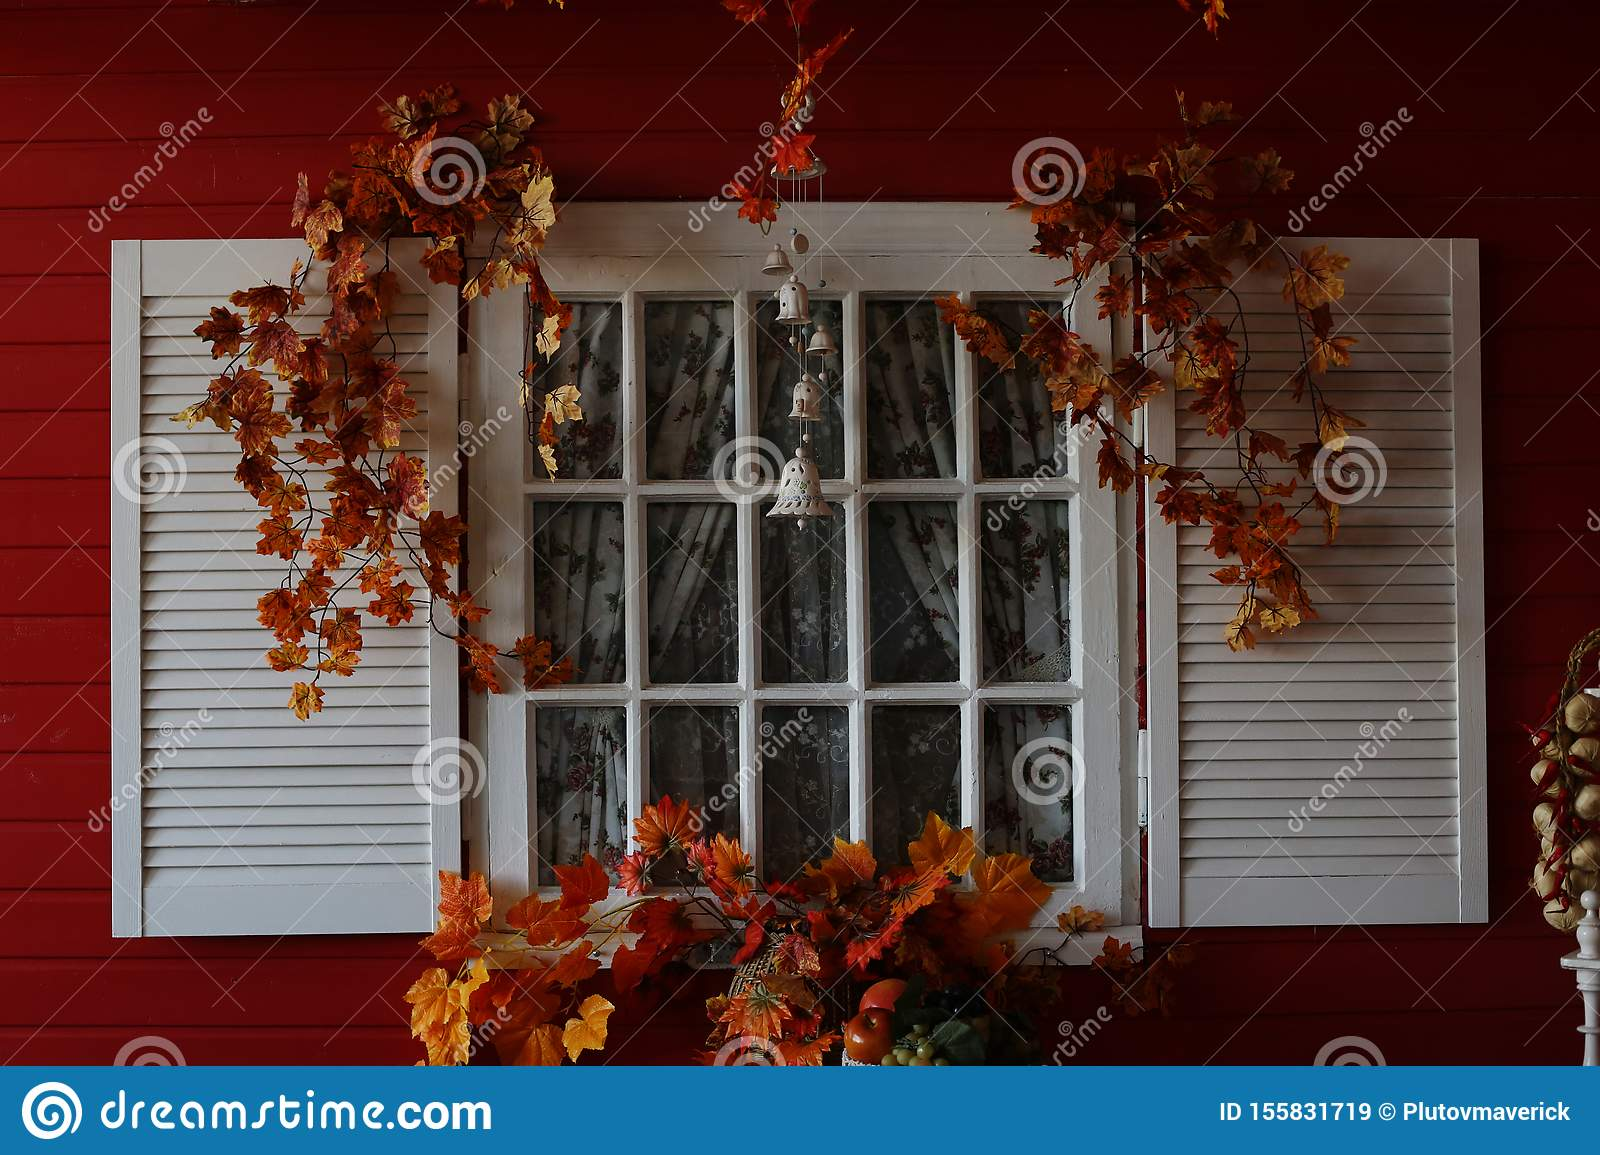 A White Wooden Window With Shutters Decorated In Autumn